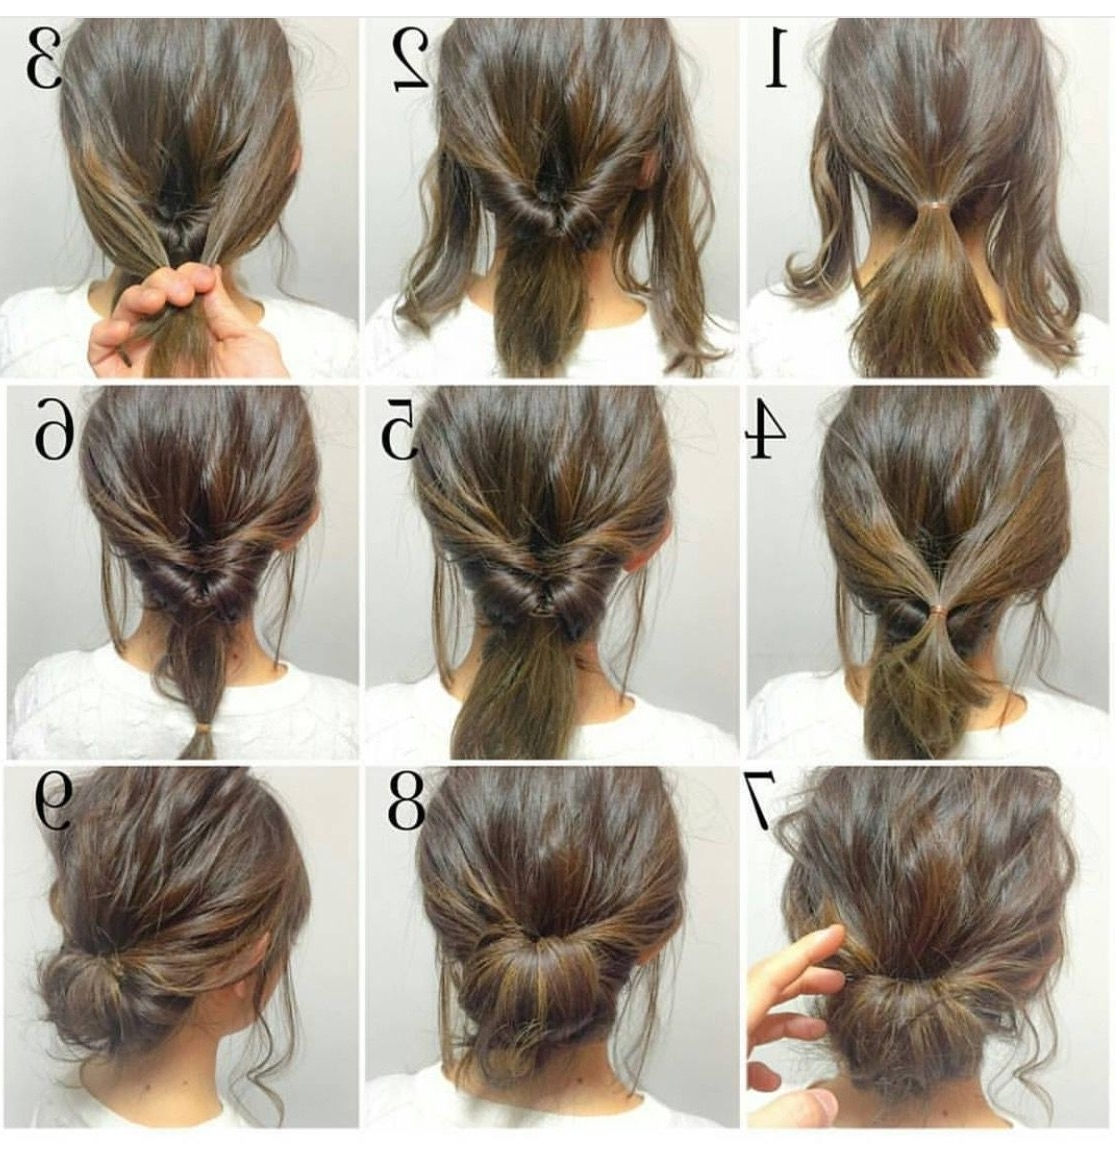 Easy, Hope This Works Out Quick Morning Hair! | • H A I R Throughout Pretty Updo Hairstyles For Long Hair (View 12 of 15)